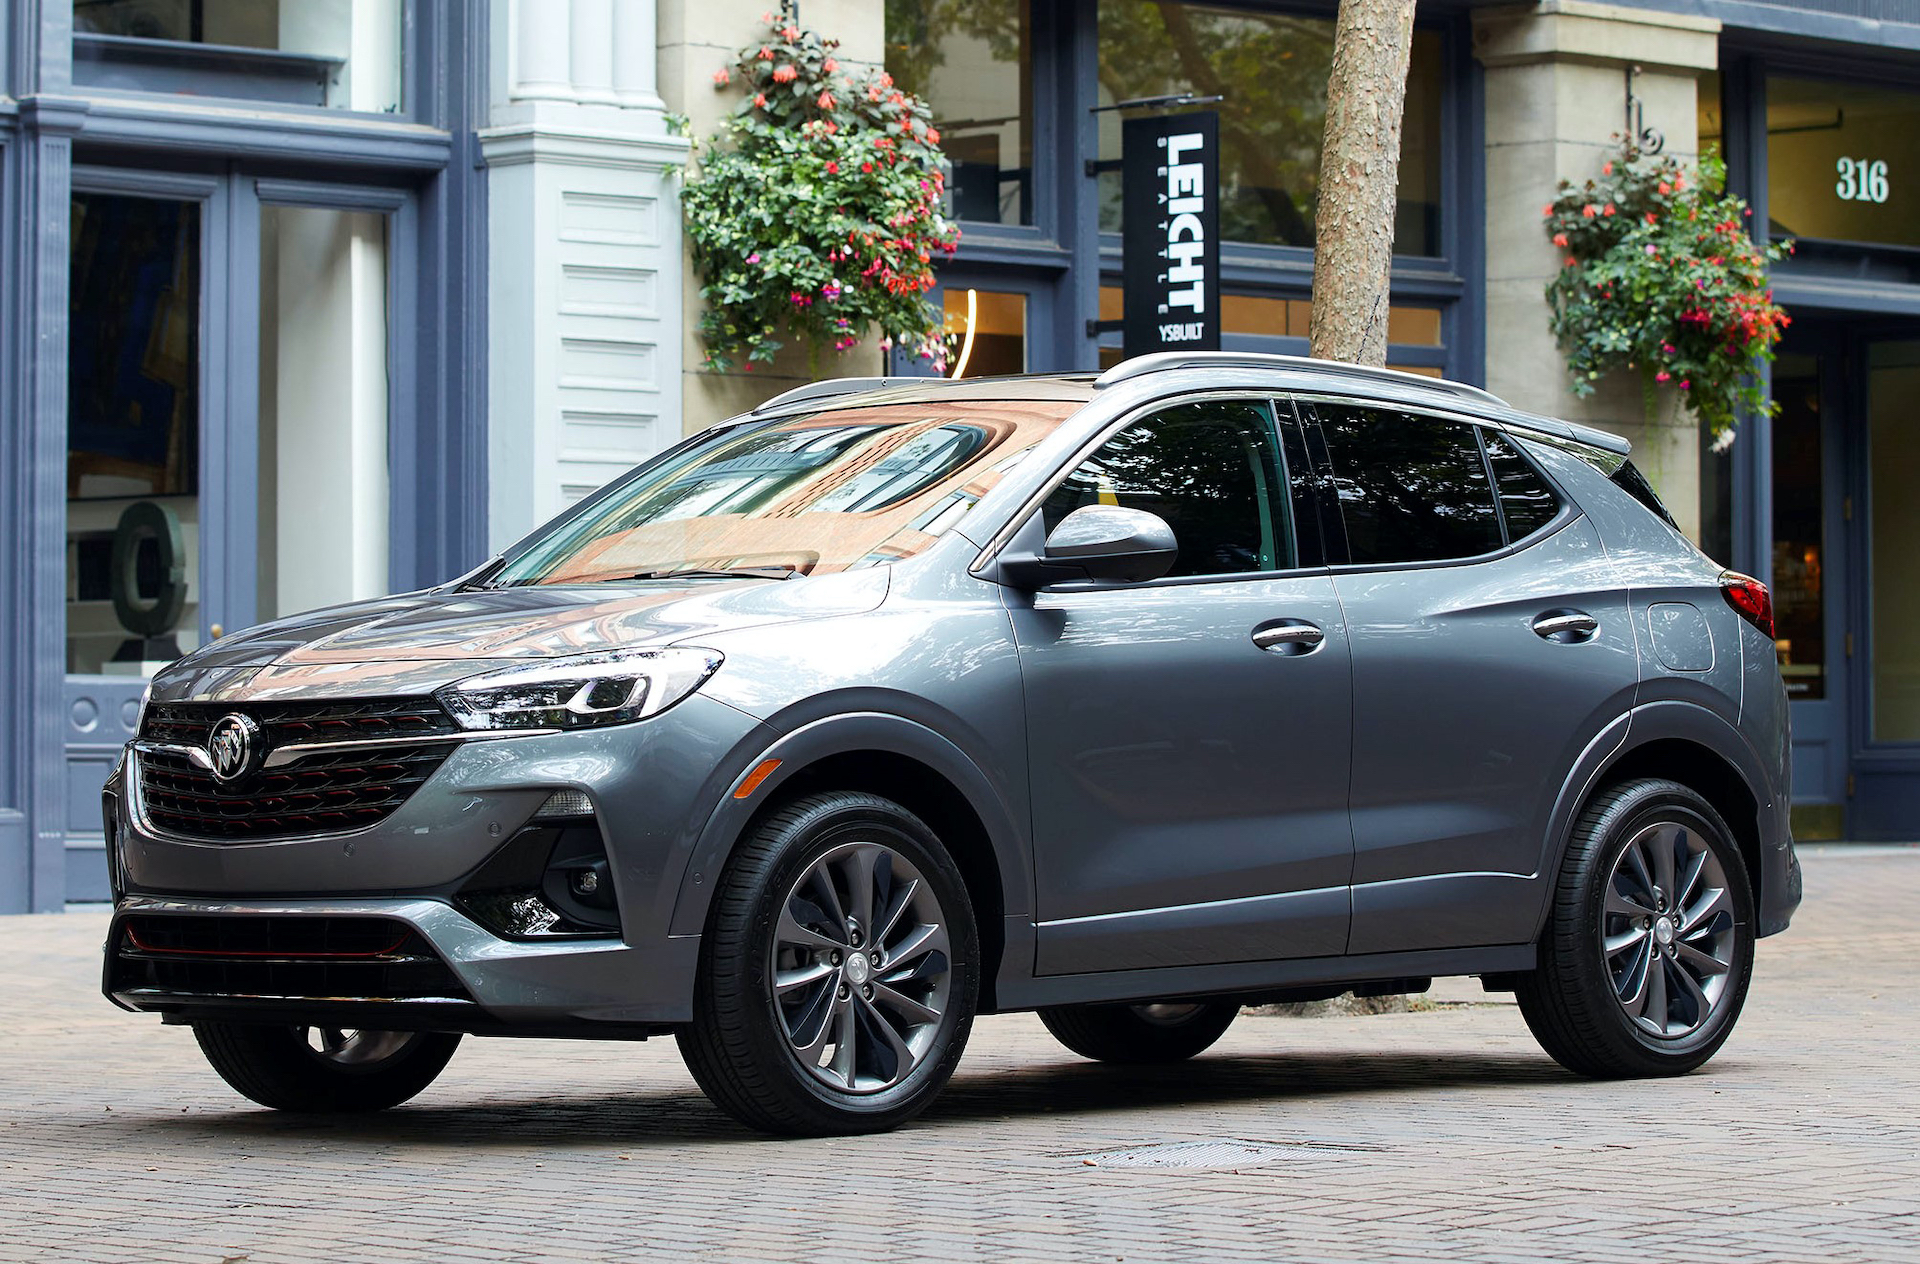 2021 Buick Encore Gx Review, New York Auto Show Canceled New 2022 Buick Encore Reviews, Preferred, Price